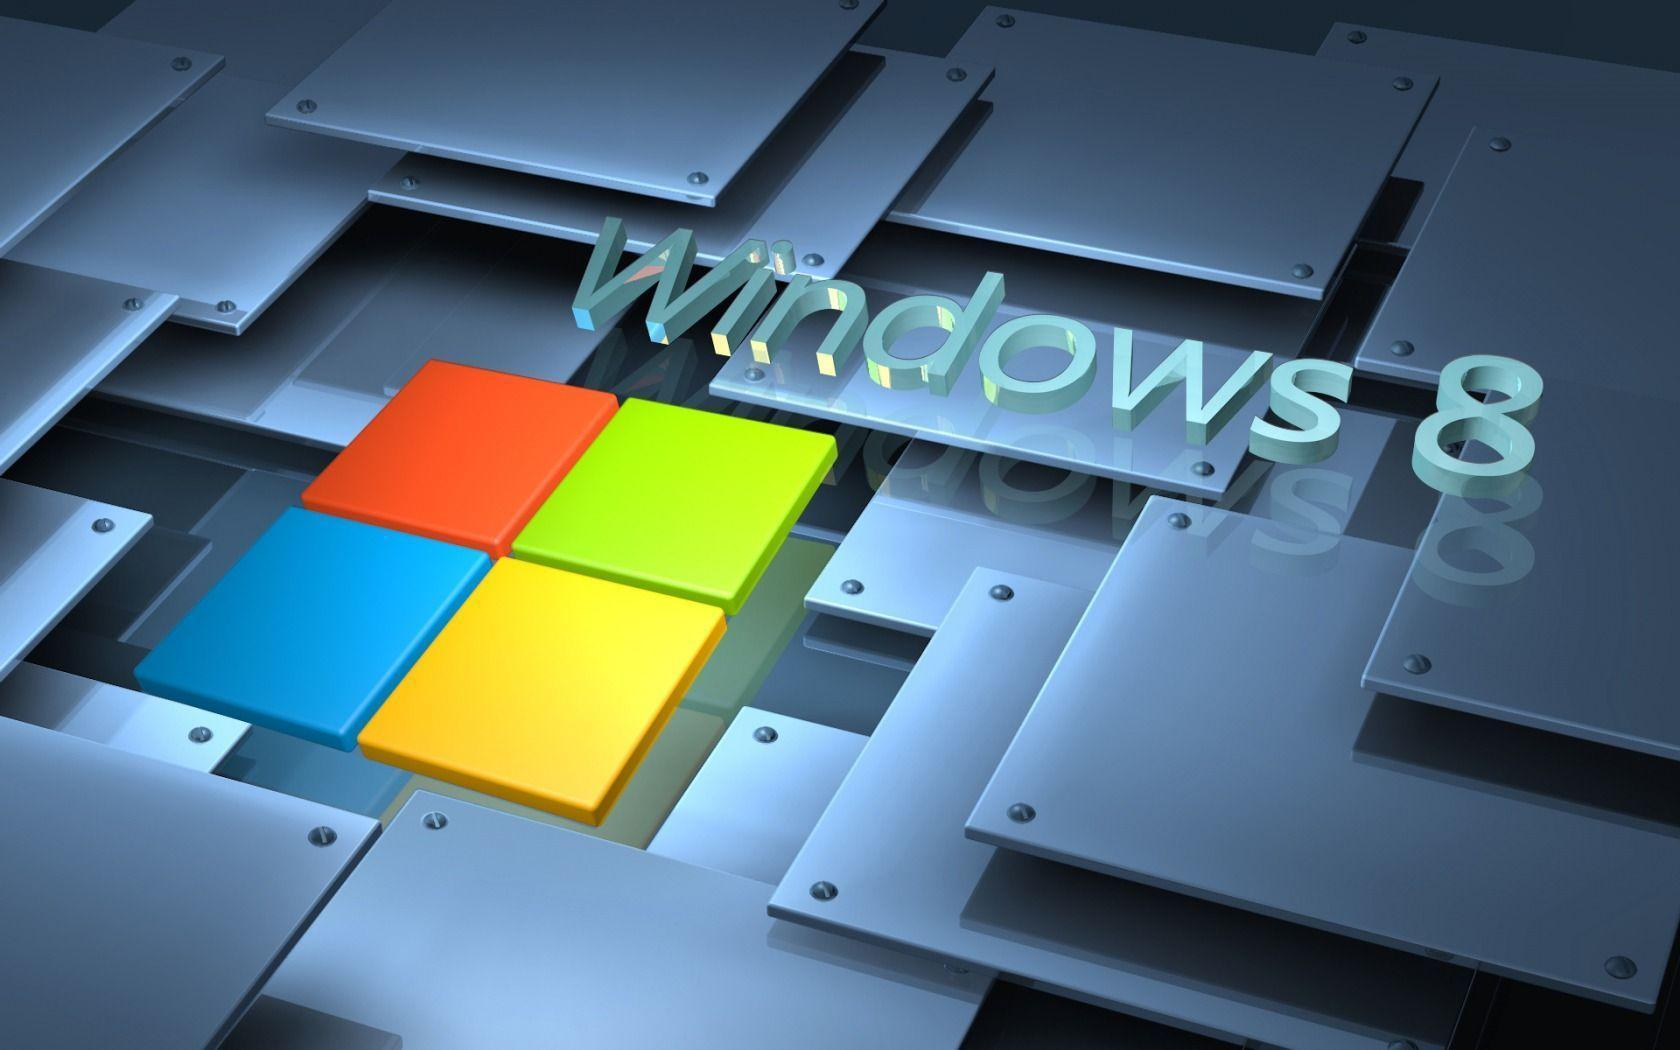 windows 8 3d wallpapers wallpaper cave